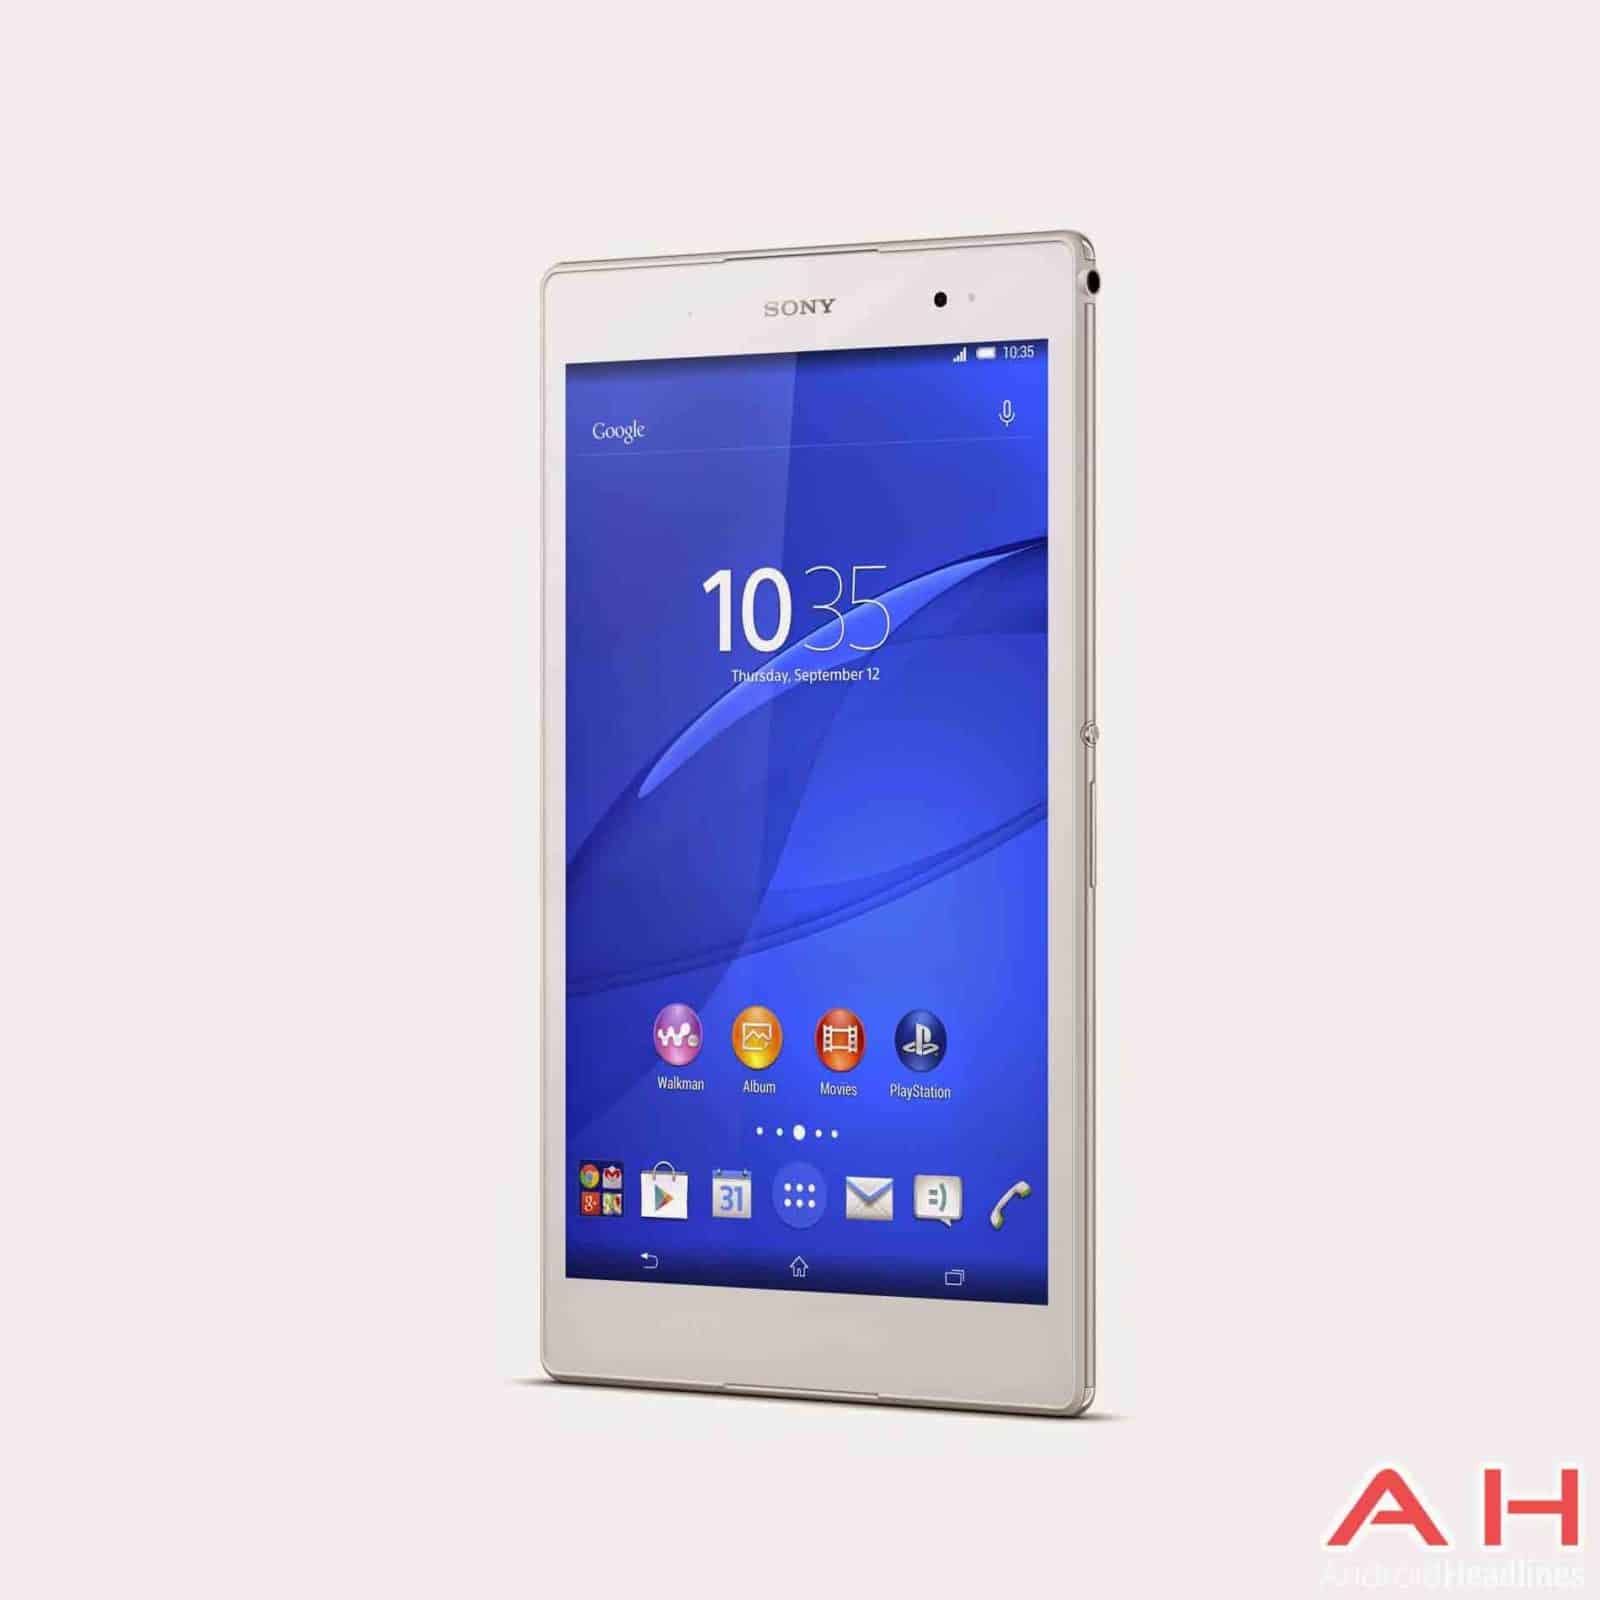 Sony-Xperia-Z3-Tablet-Compact-AH-4